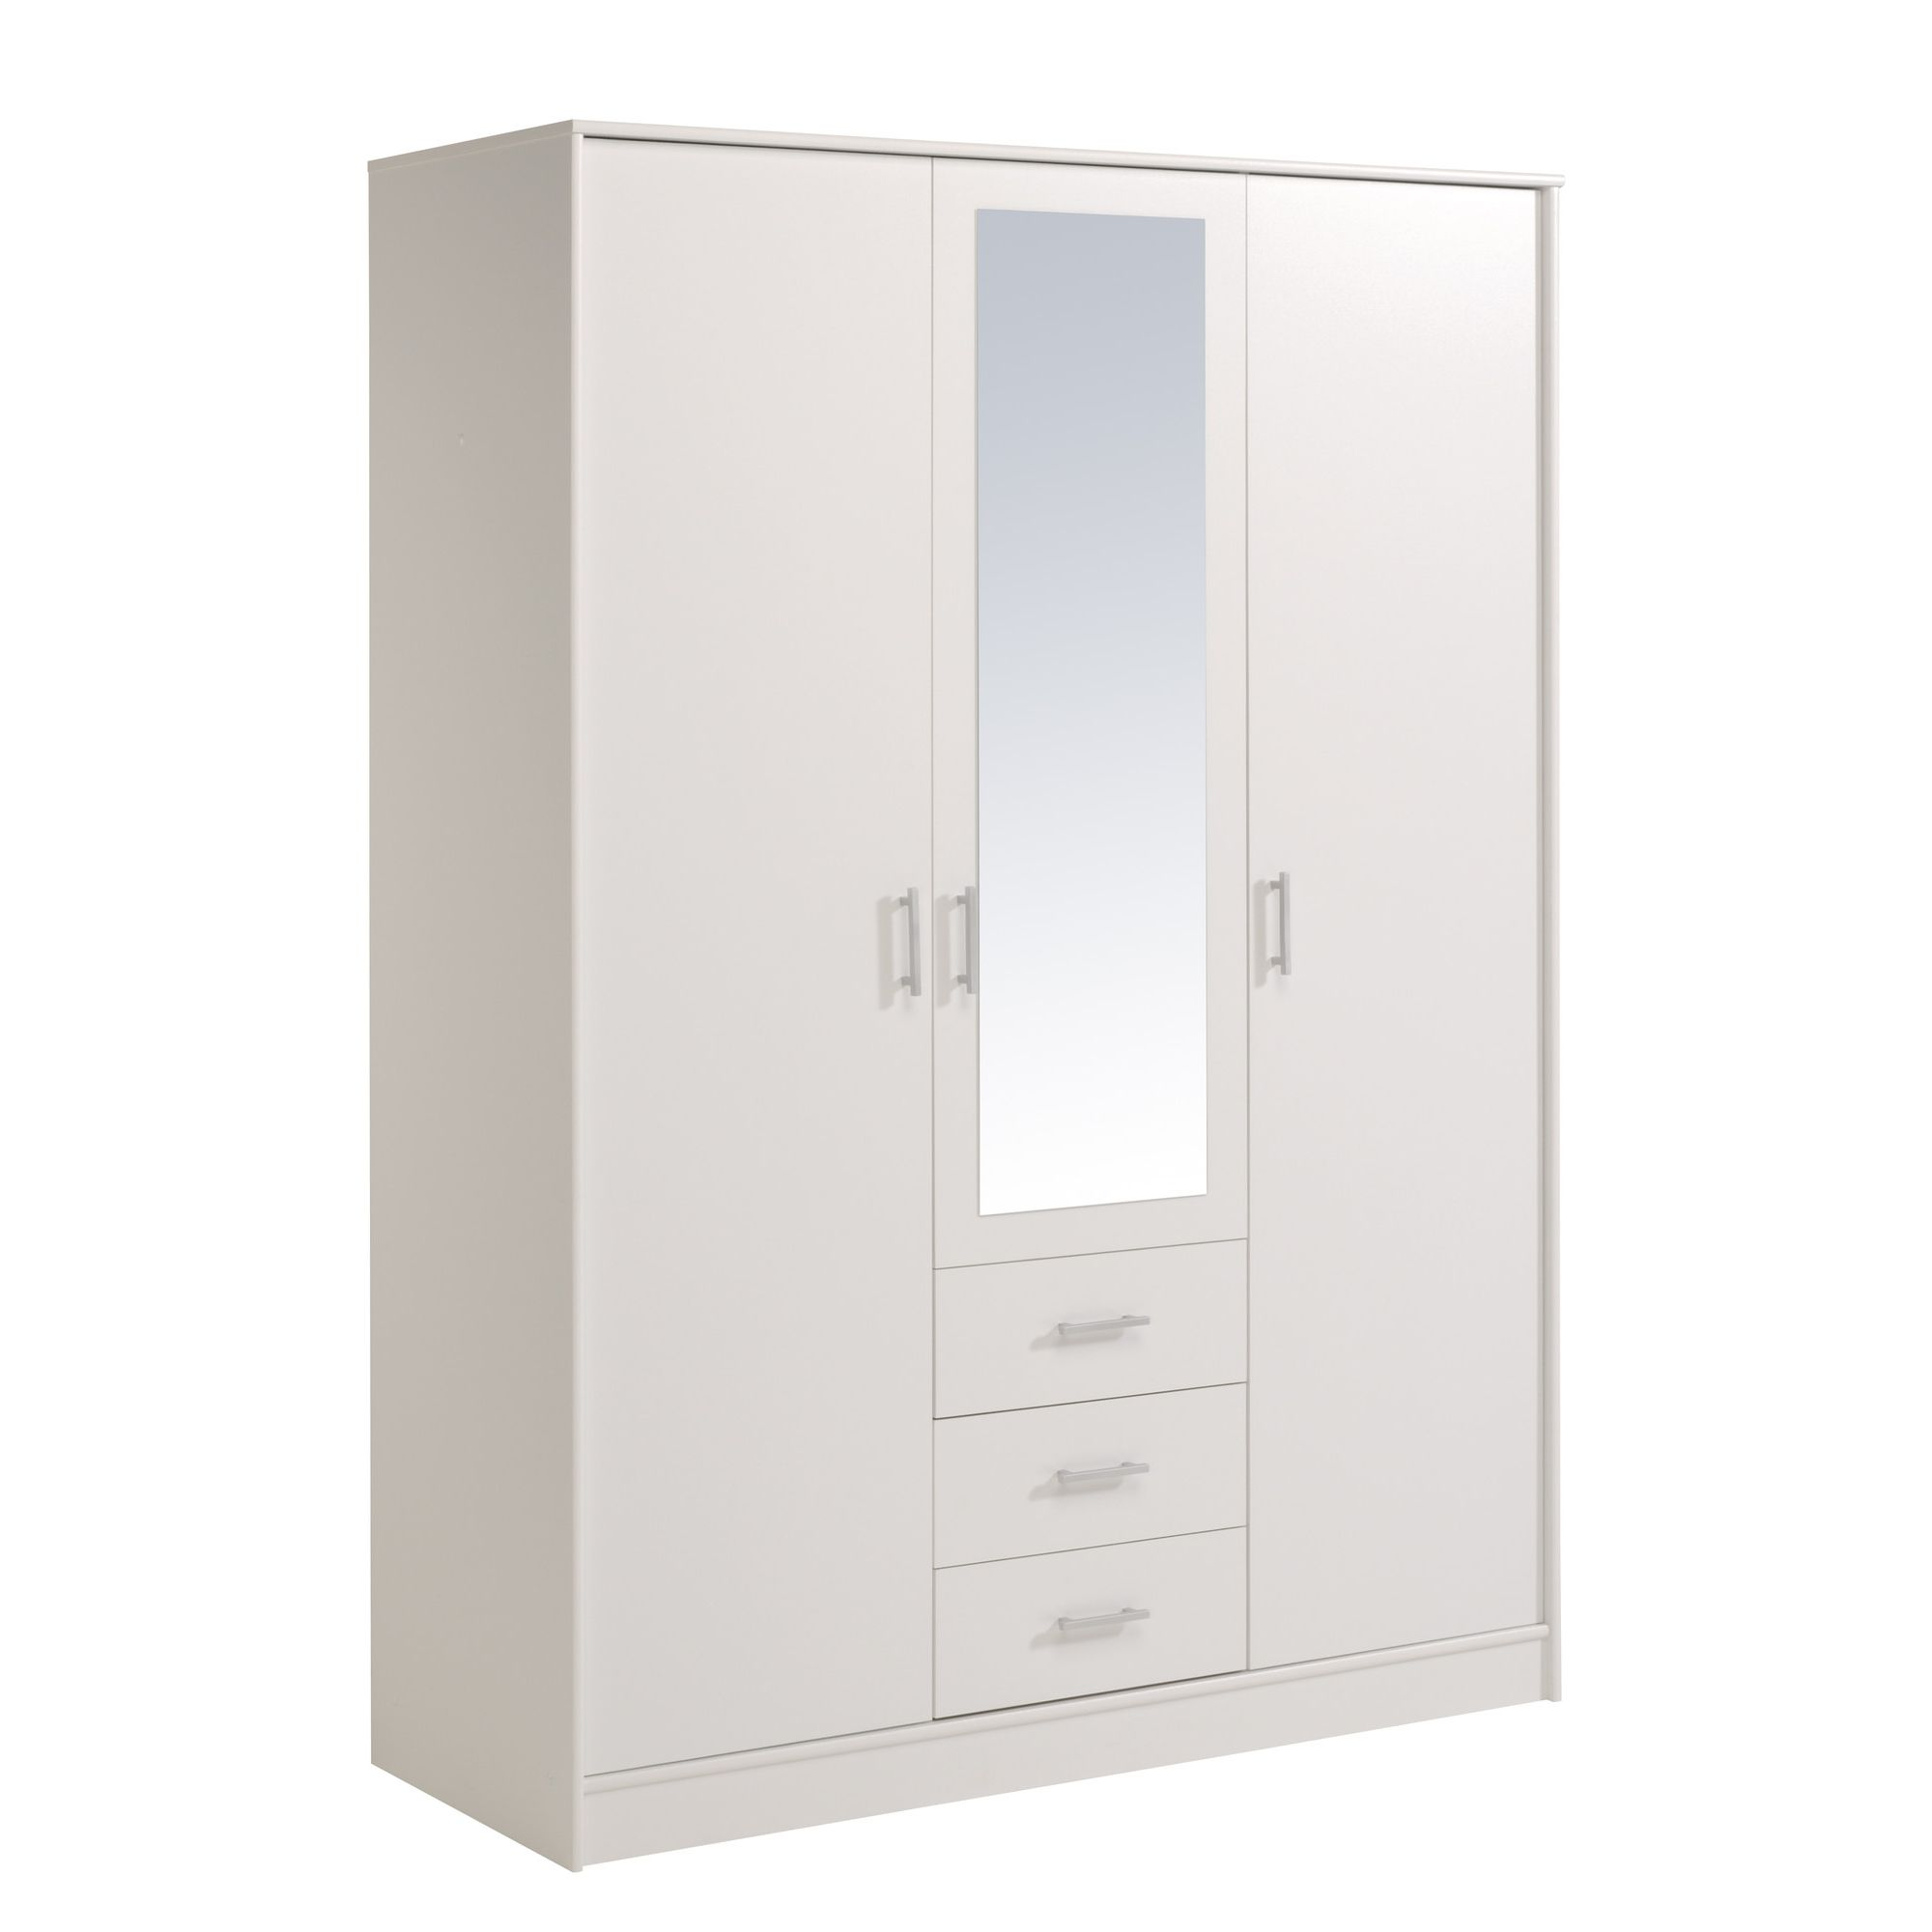 Parisot Essential Wardrobe with 3 Doors and 3 Drawers - White Megeve at Tesco Direct